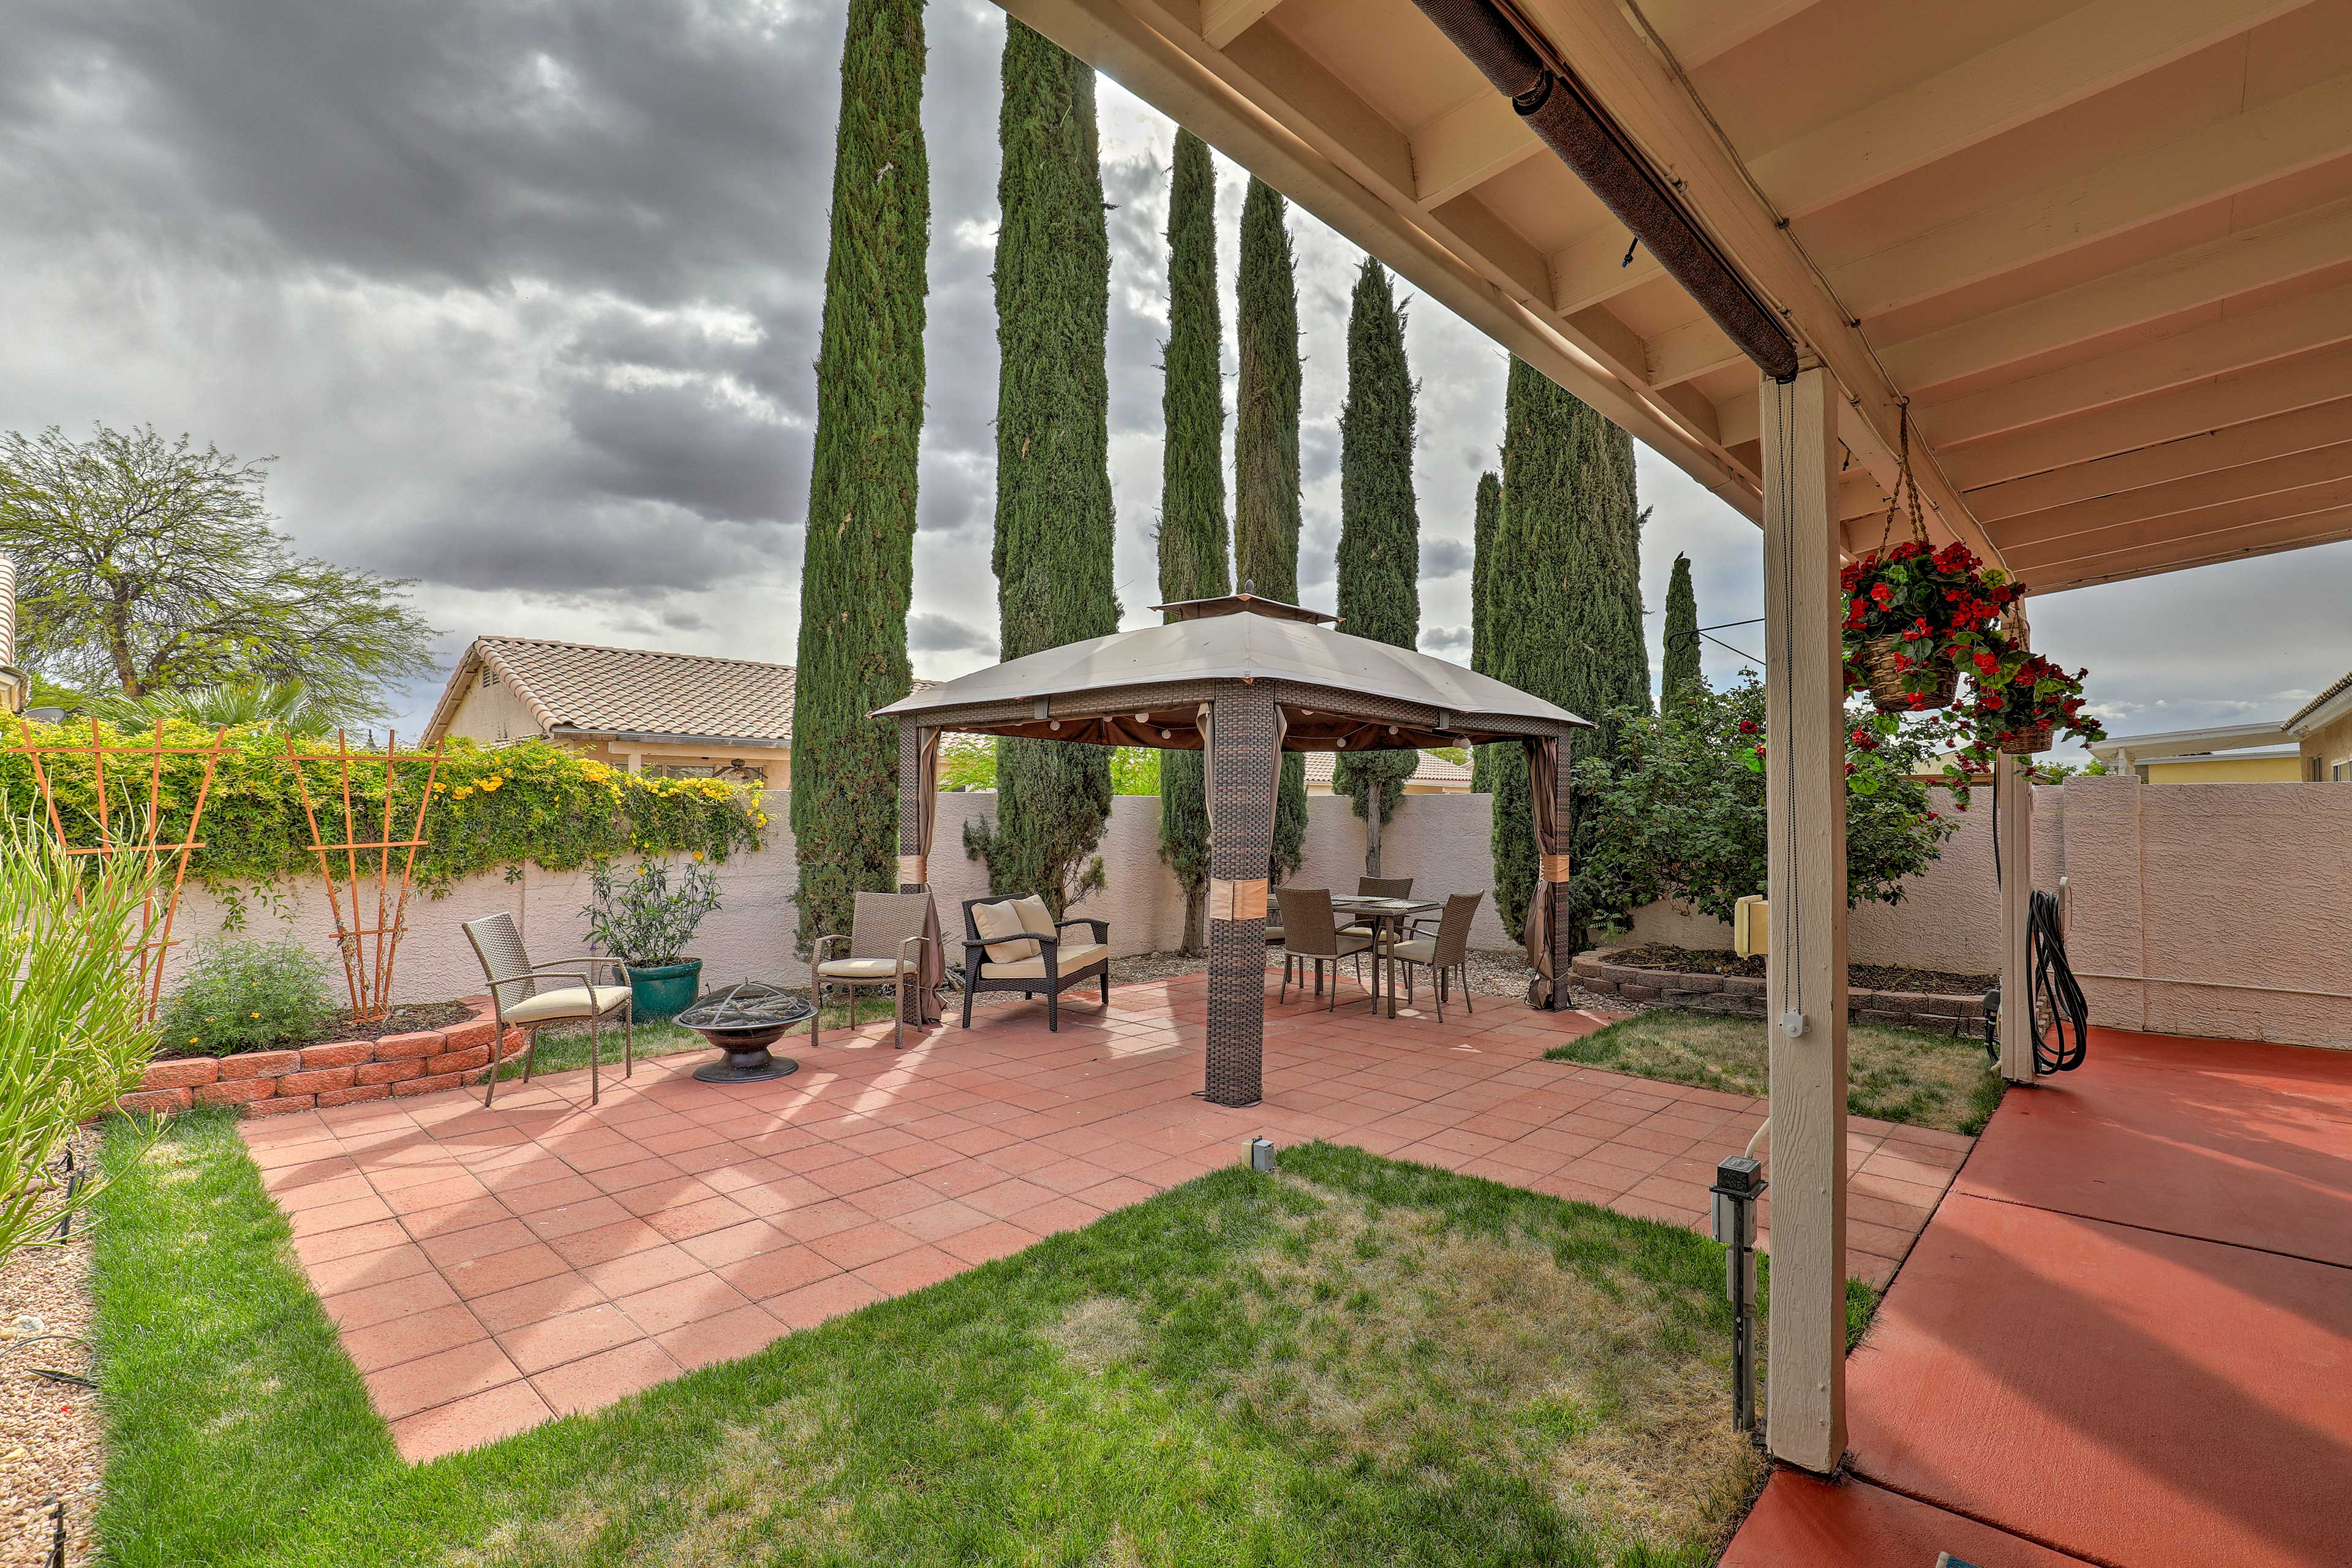 Gather under the gazebo or around the fire pit to socialize outside.